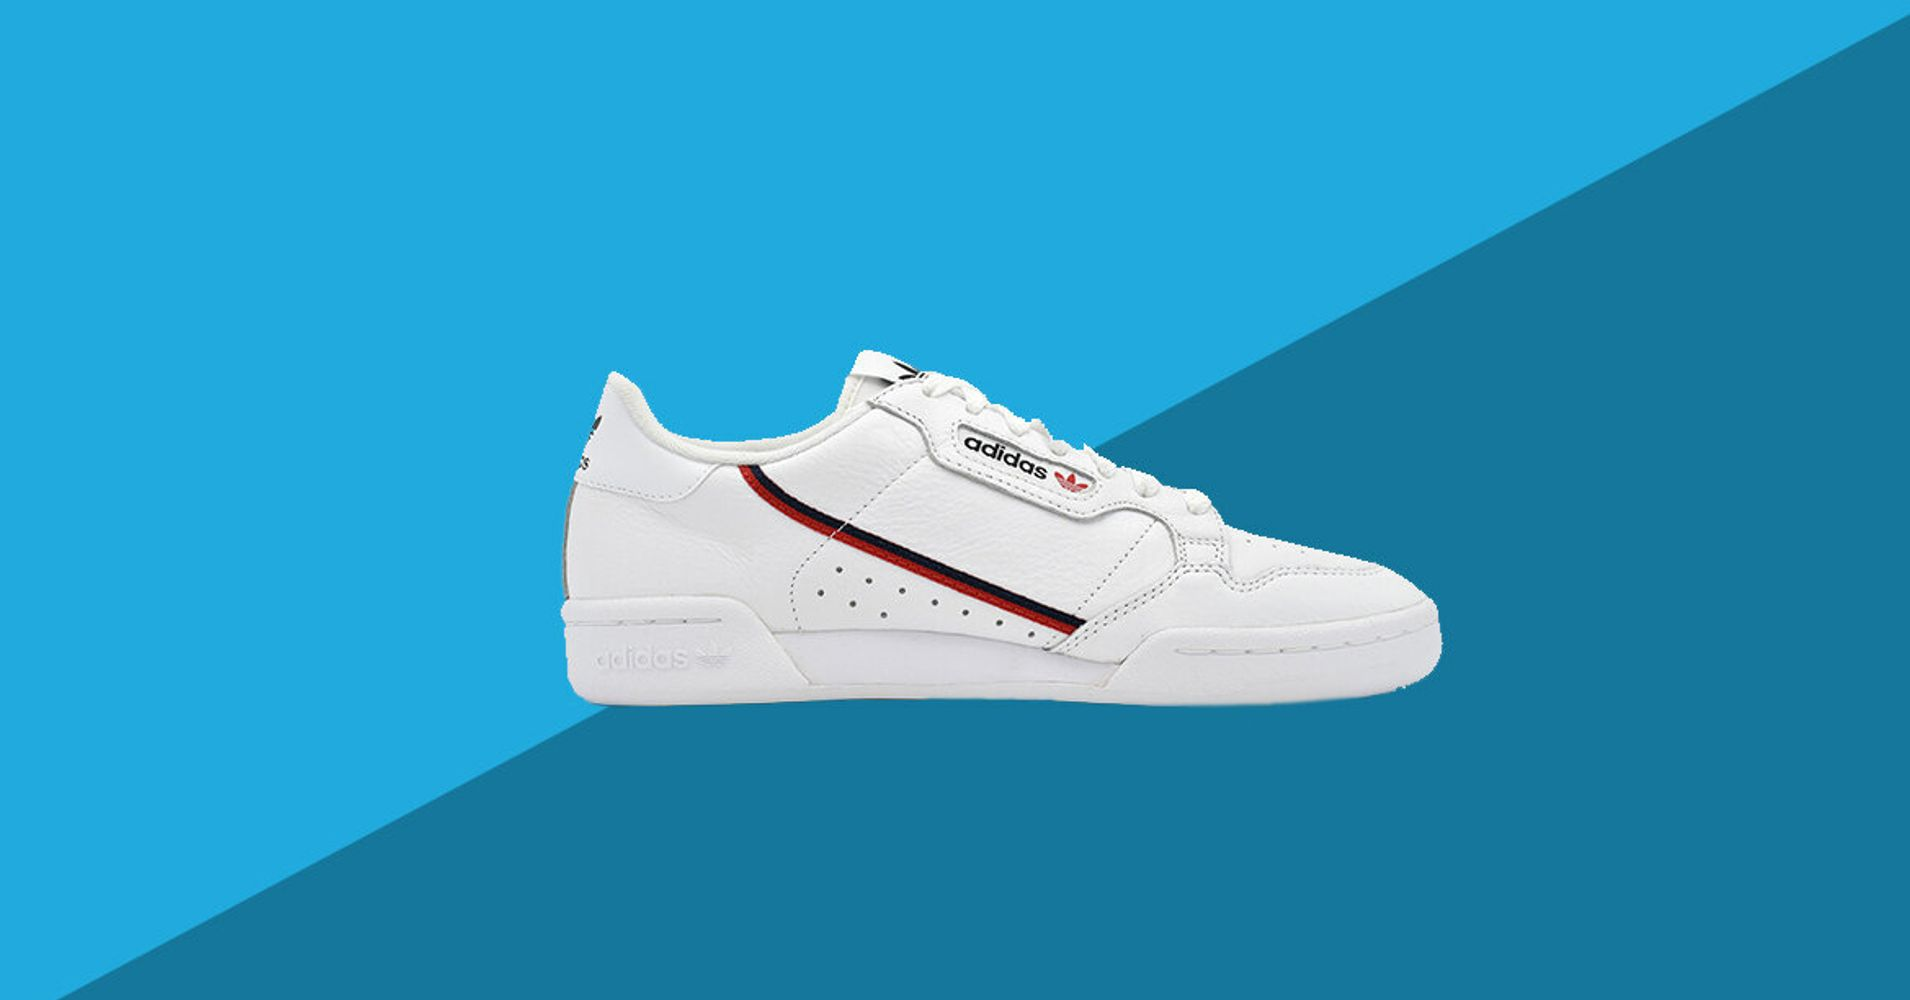 8f8c87f5d78db Women's Trainers You Can Buy In Kids' Sizes To Save You Money. Despite the  average shoe ...